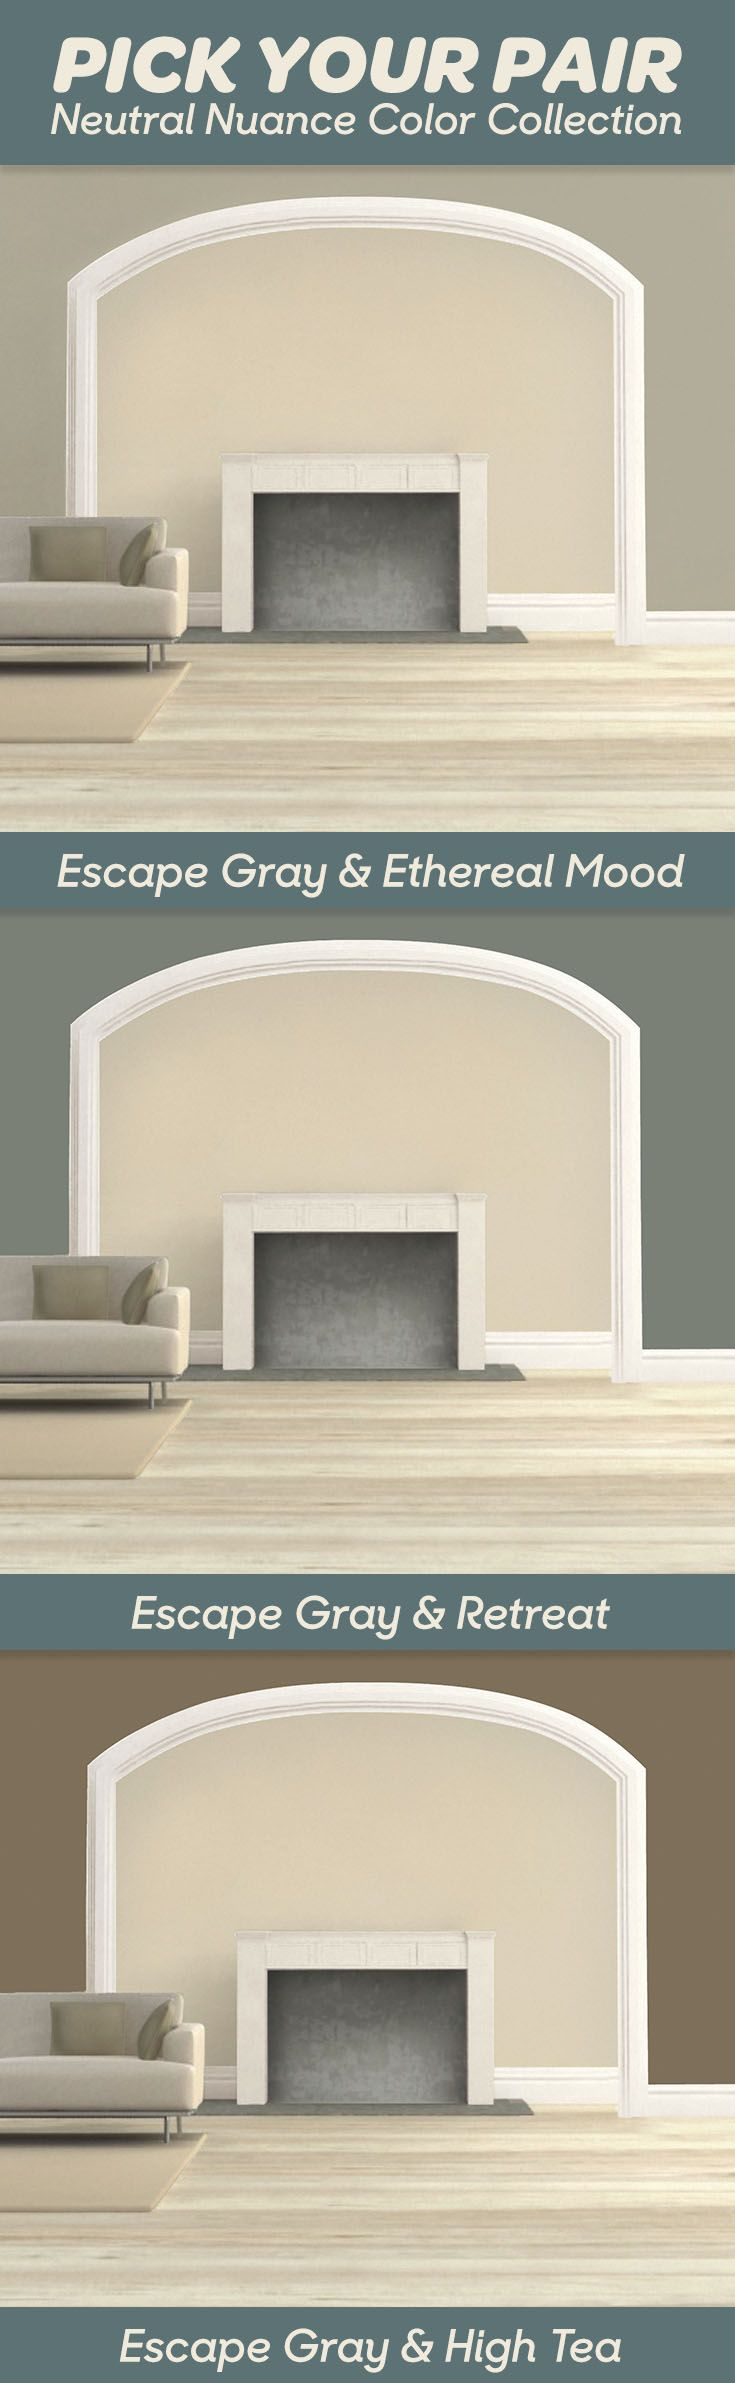 Bedroom Ideas So Many Colors Go Great With Escape Gray SW6185 19 From The Neutral